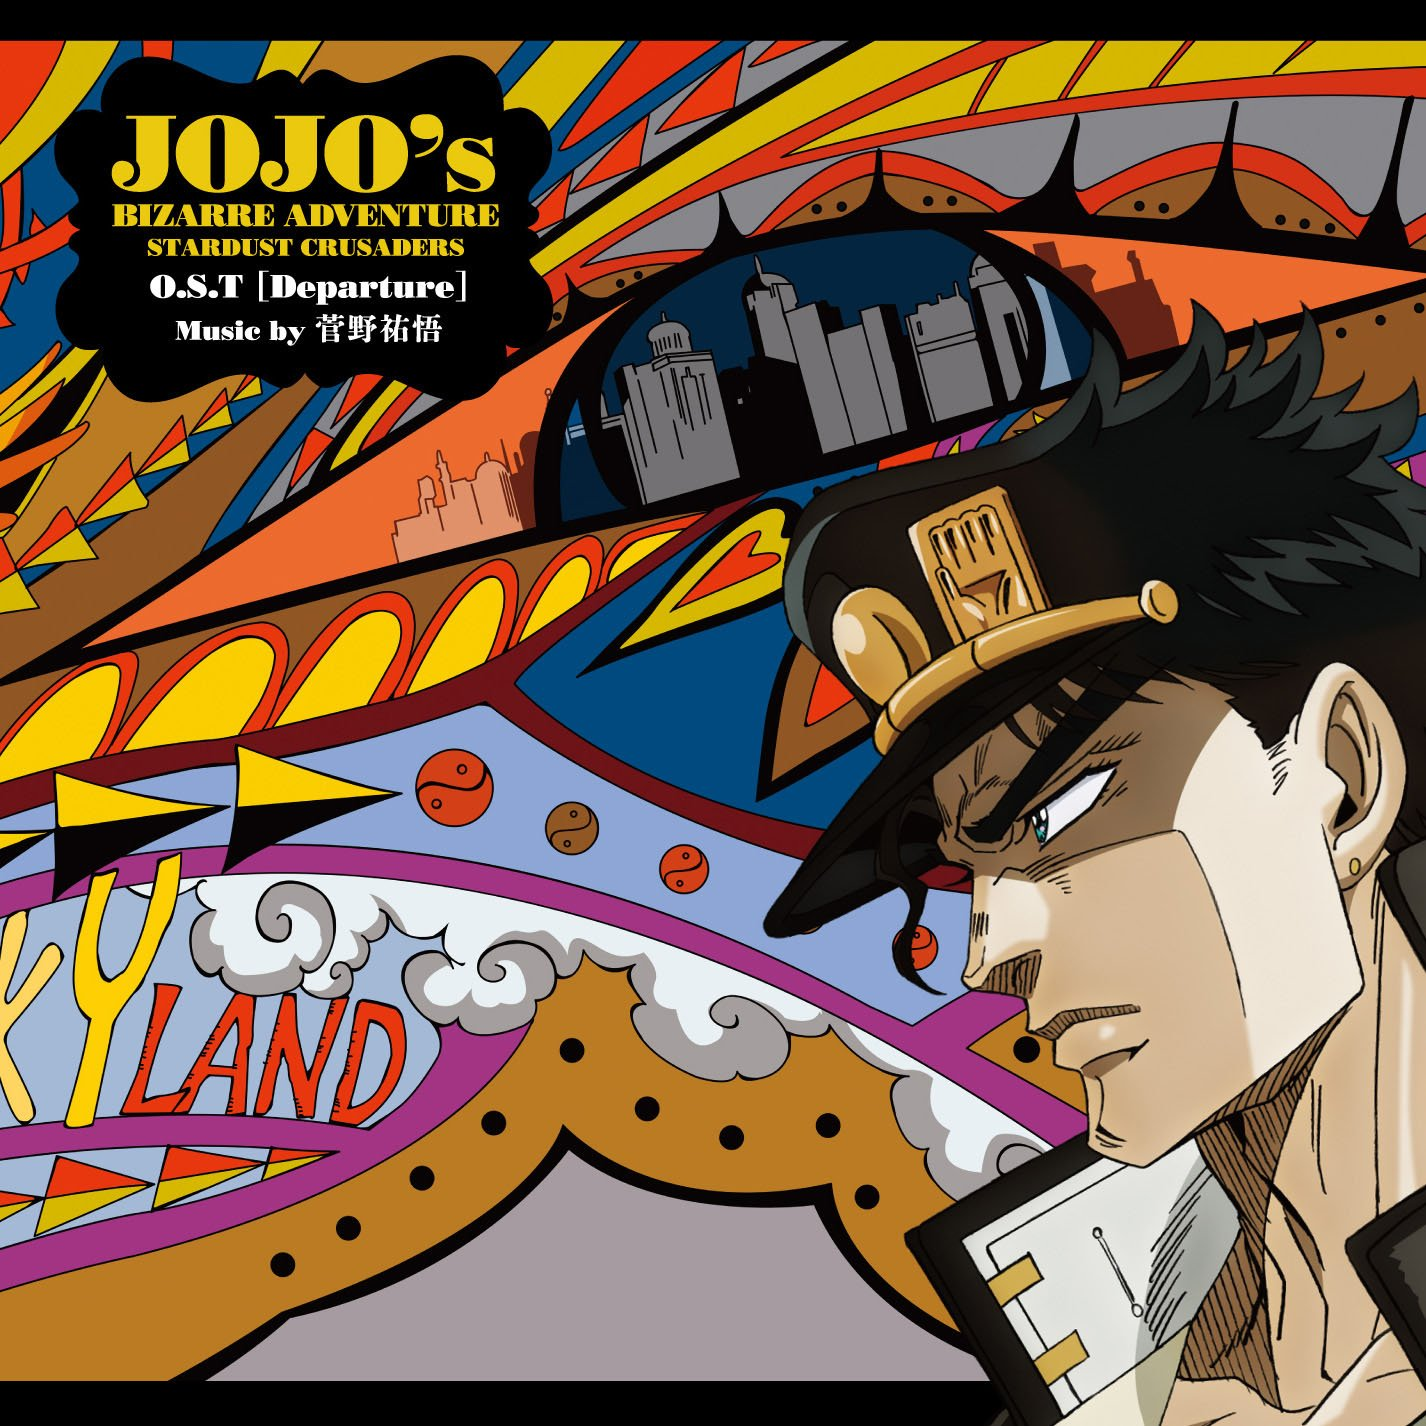 NEW JoJo's Bizarre Adventure Stardust Crusaders O.S.T